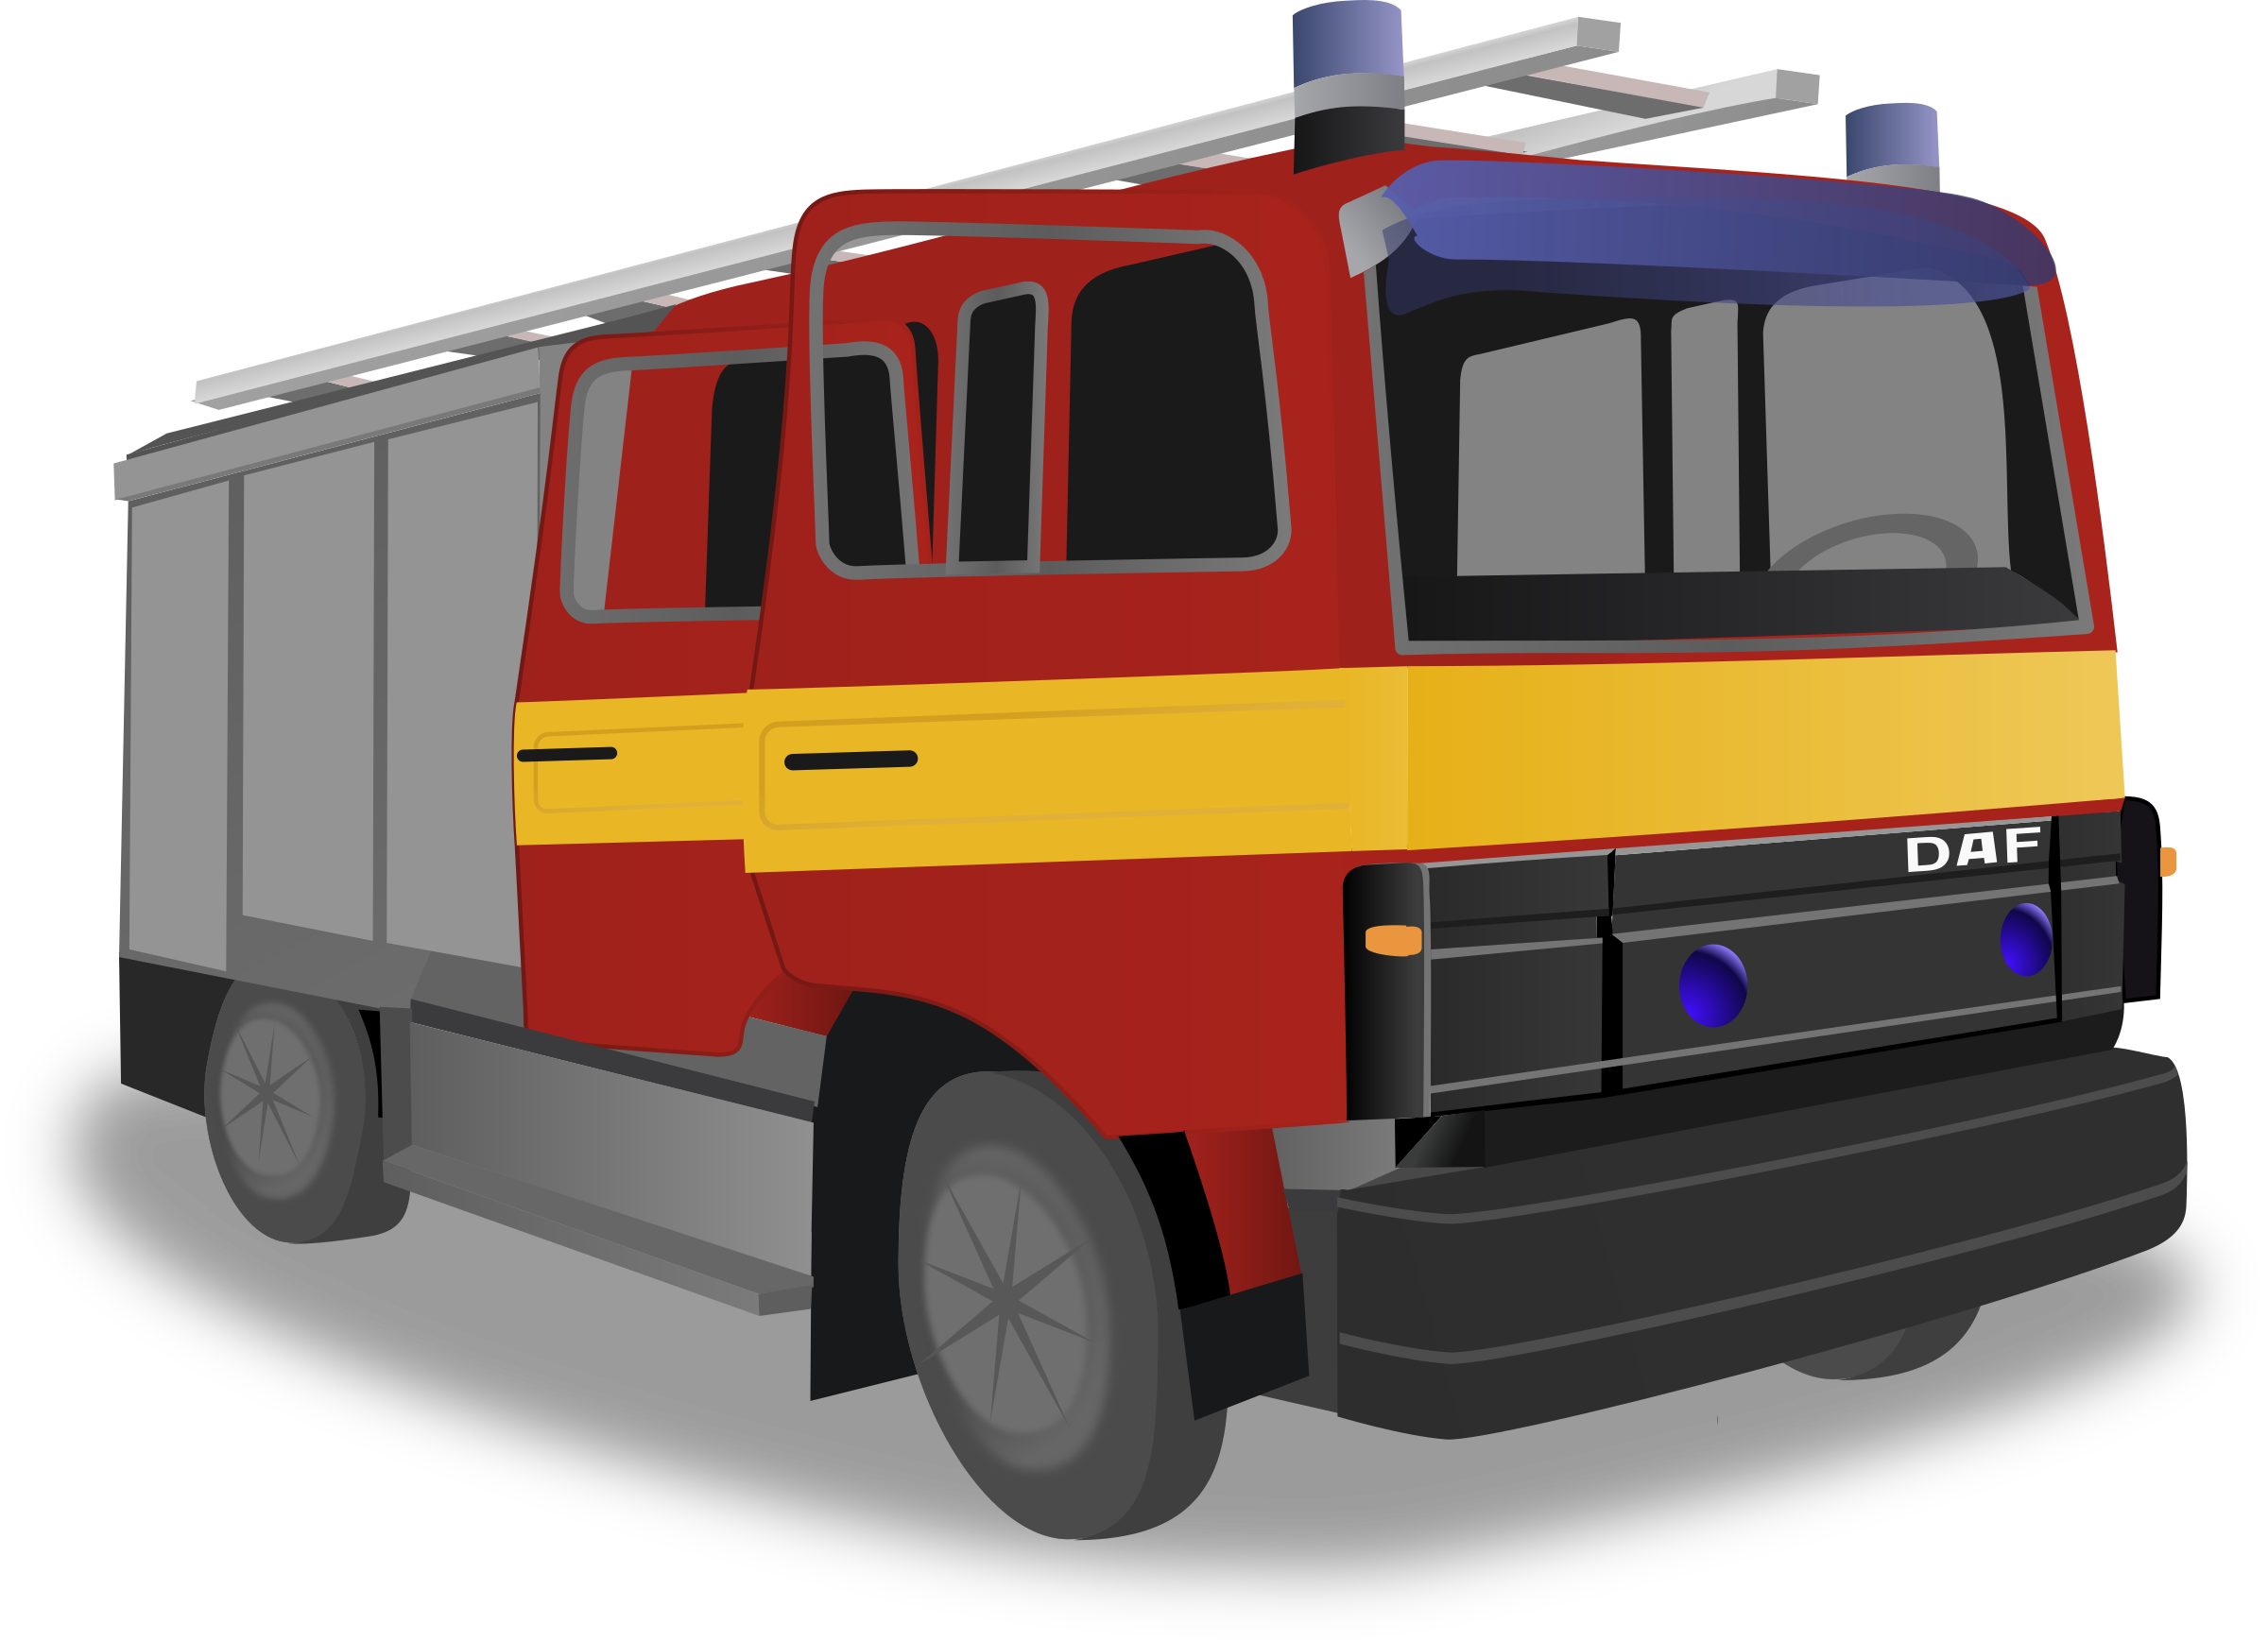 Fire truck by rdevries